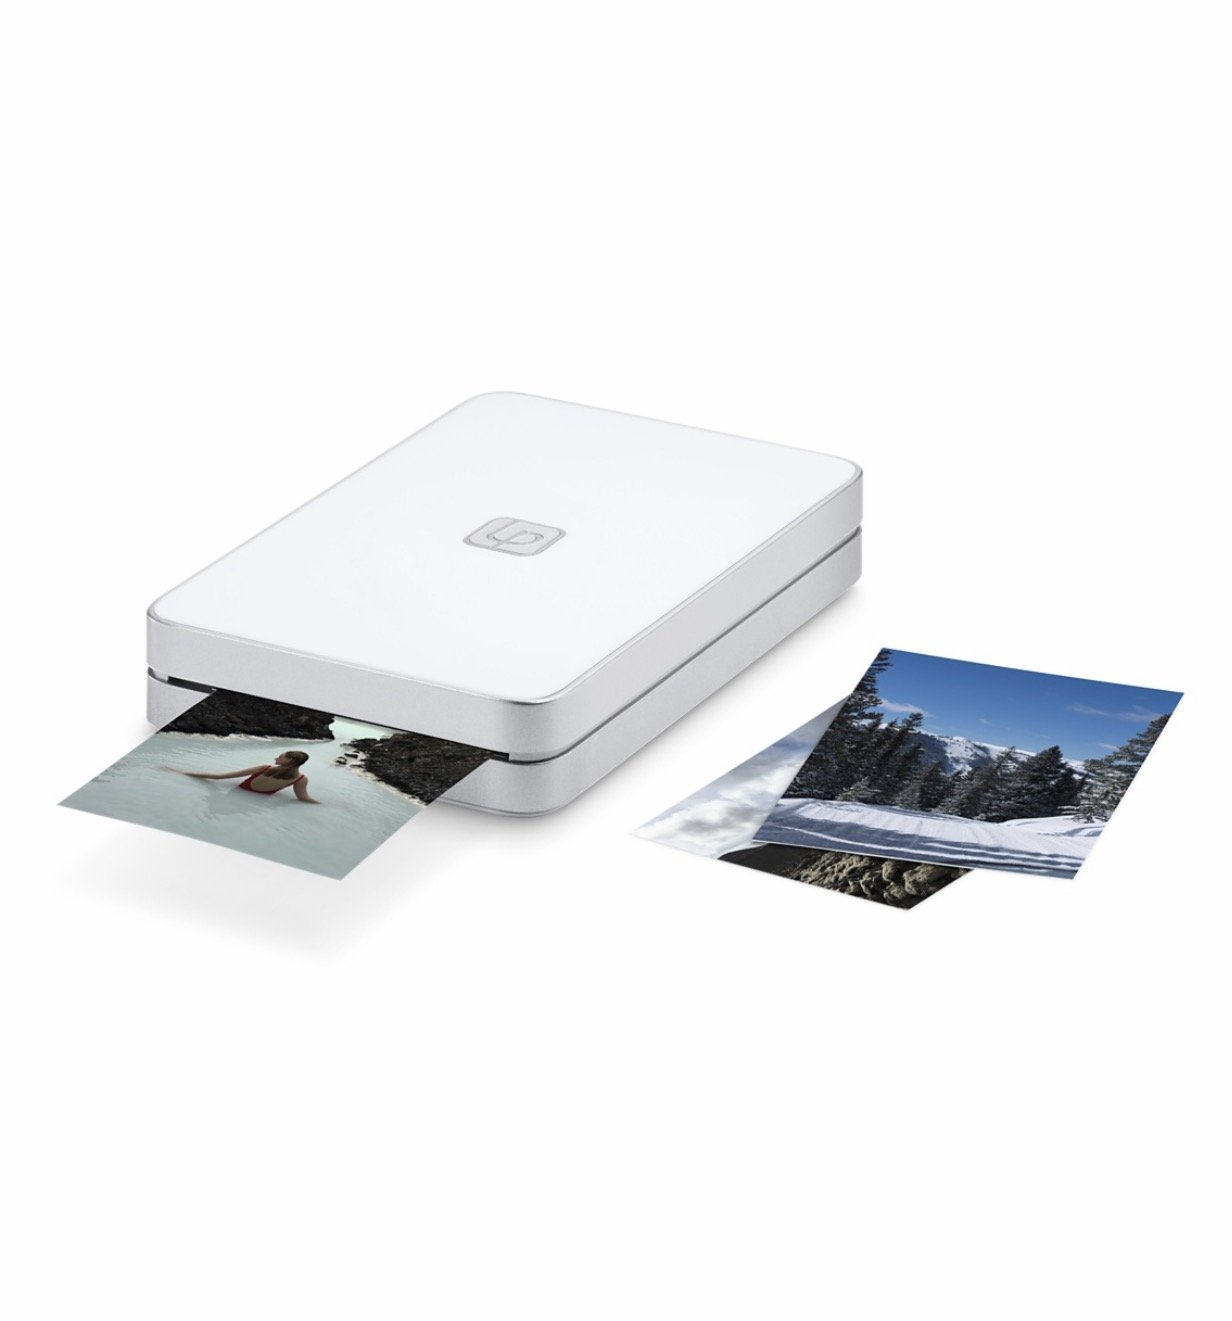 Wireless Photo & Video Printer